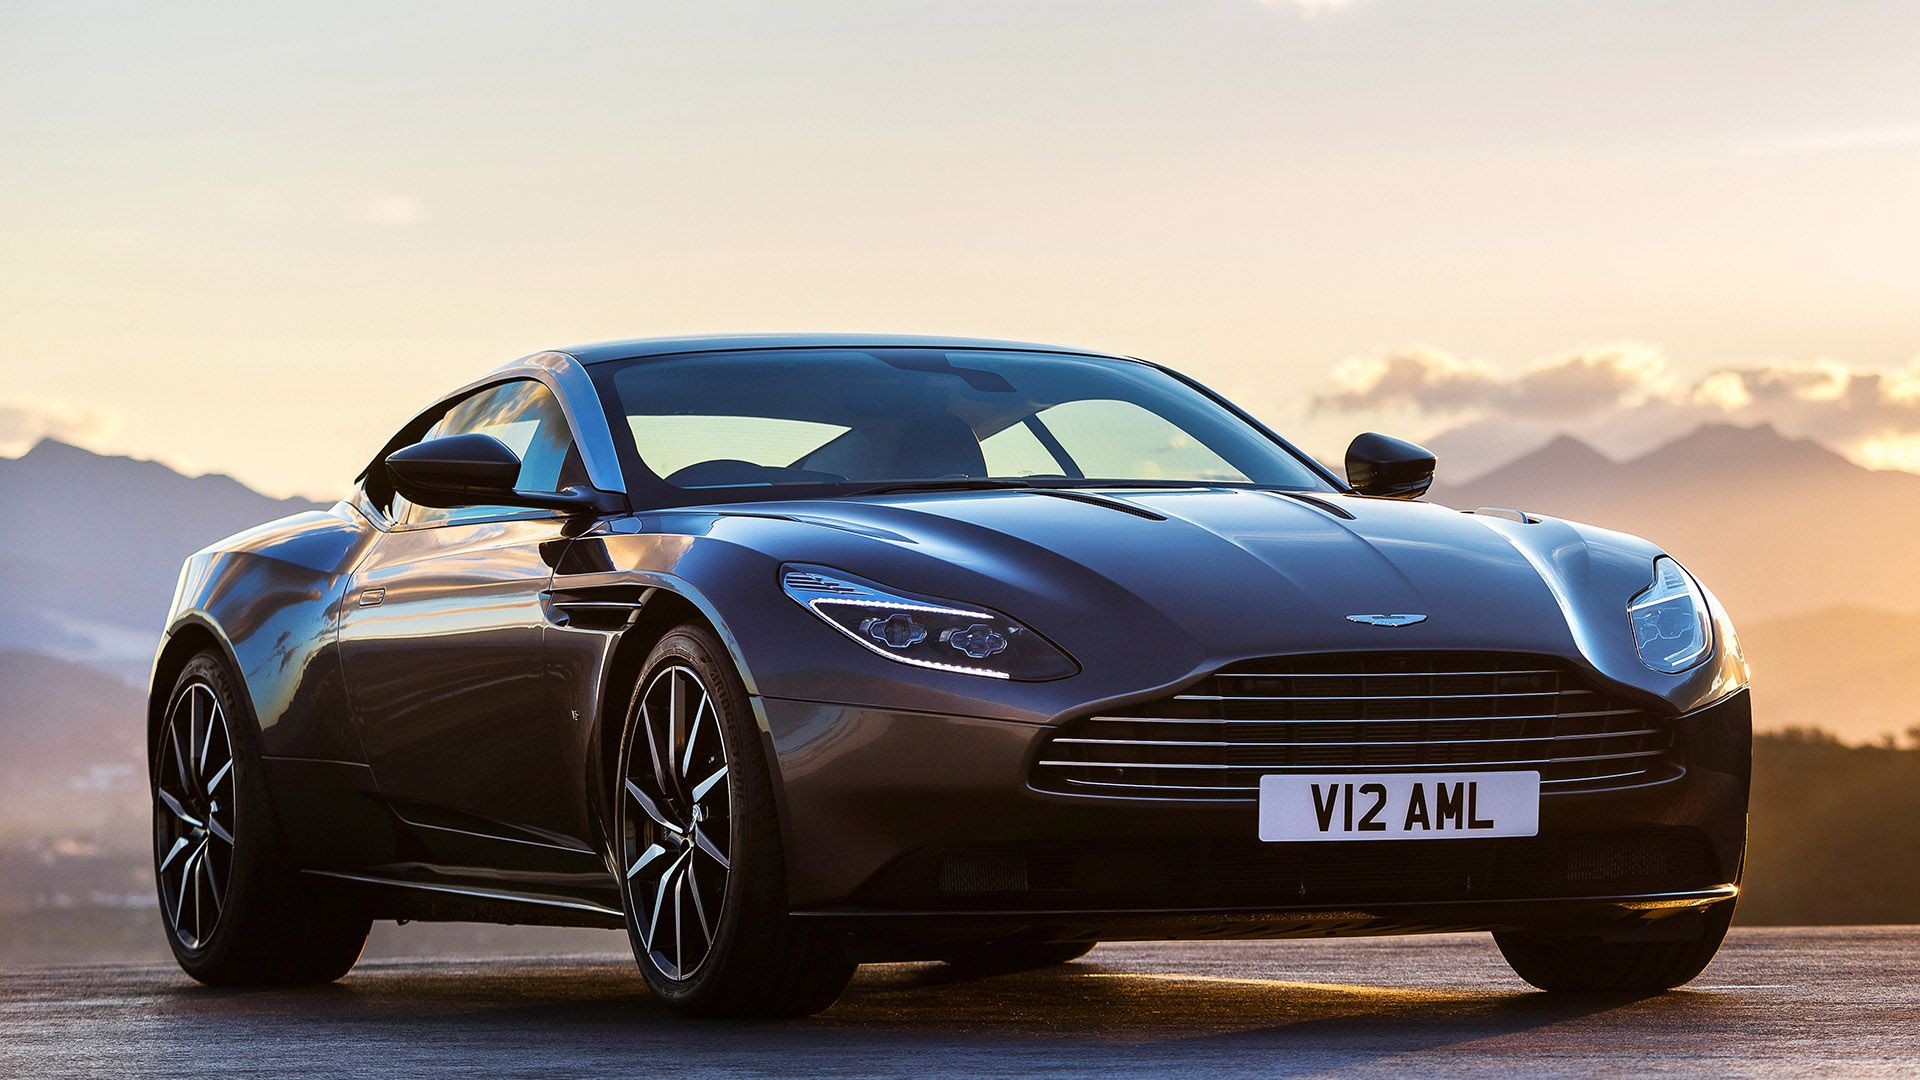 Brand New 2017 Aston Martin Db11 Front Side View 2 Gallery Aston Martin Db11 Aston Martin New Aston Martin